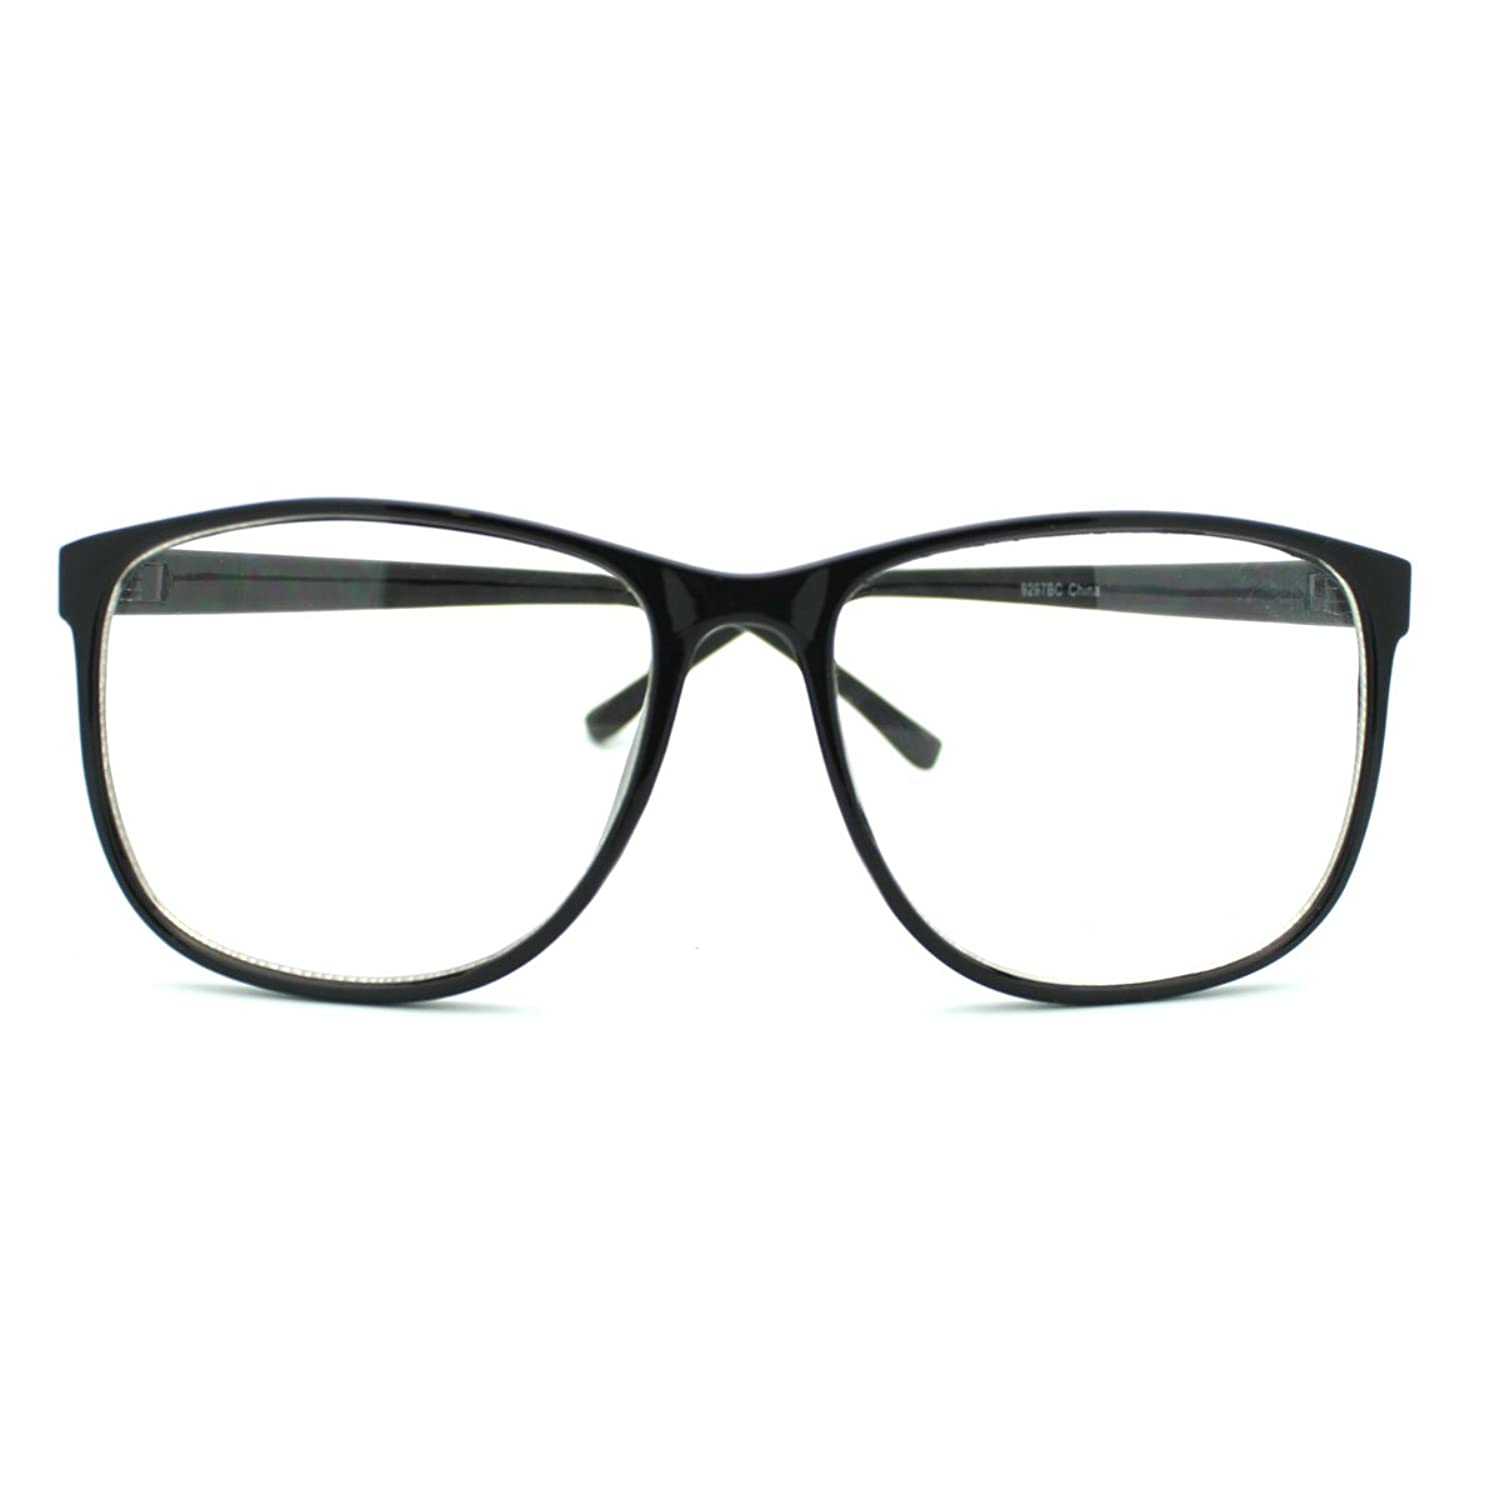 black large nerdy thin plastic frame clear lens eye glasses frame amazoncouk clothing